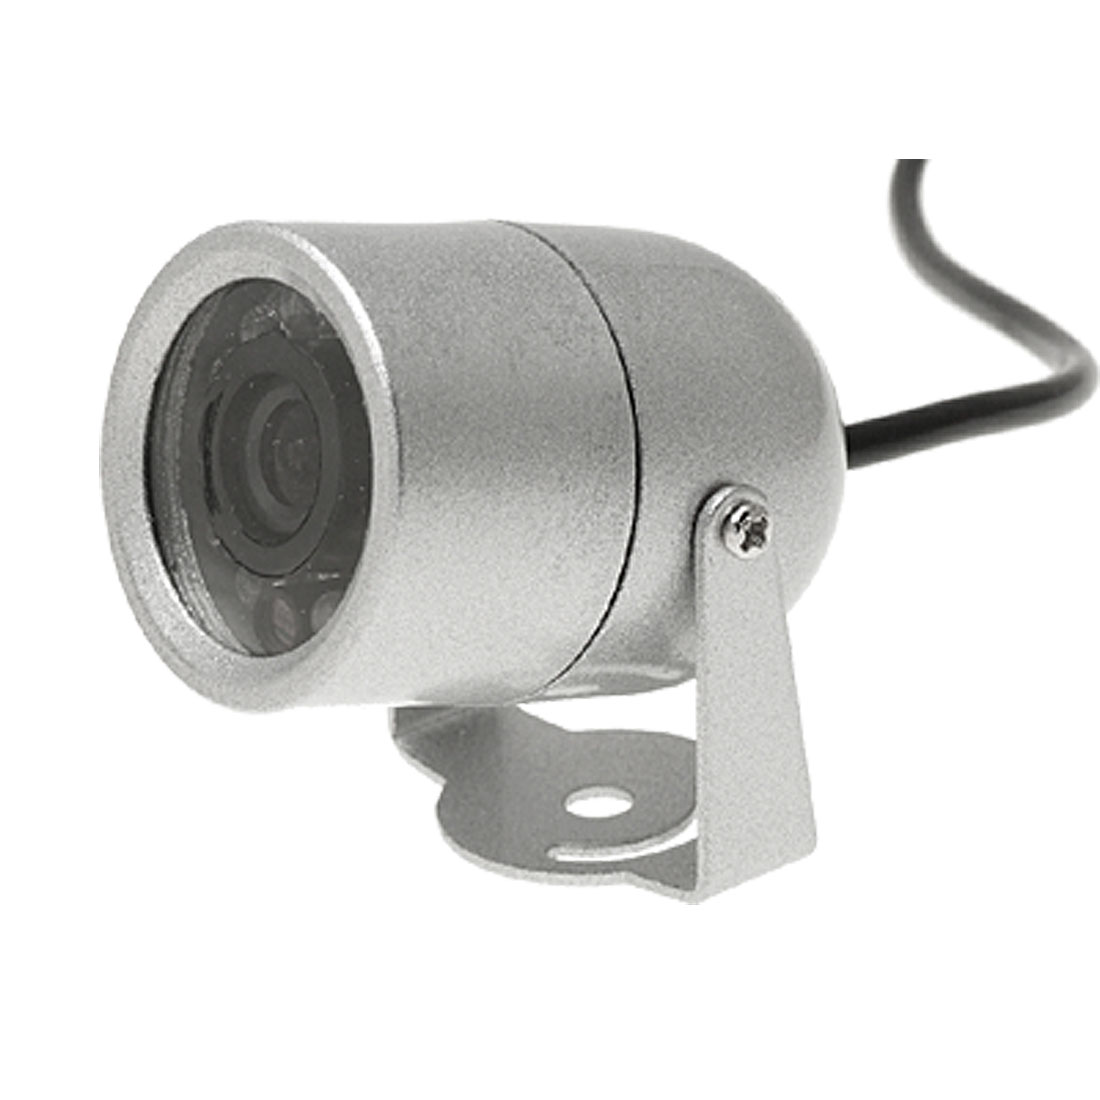 12 LED Color CMOS IR Security Surveillance Video Camera